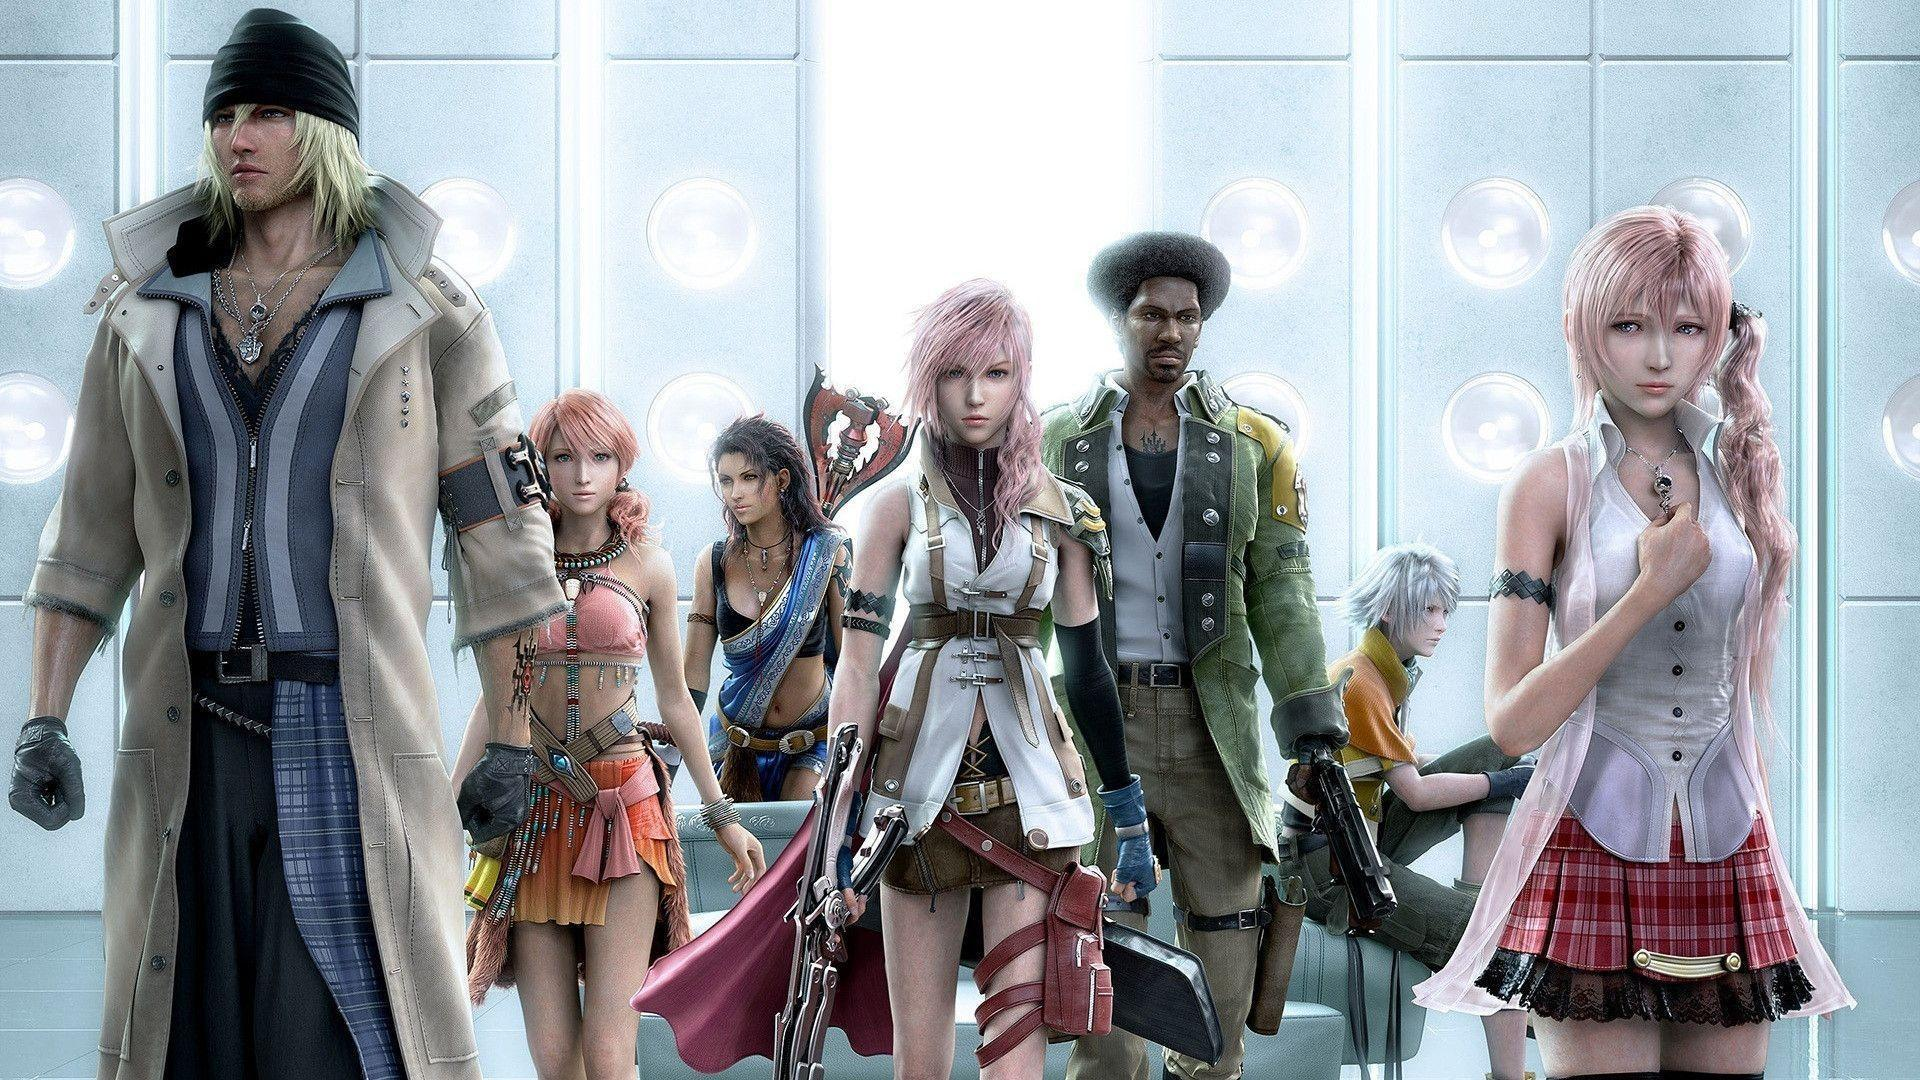 final fantasy xiii game 4 wallpapers